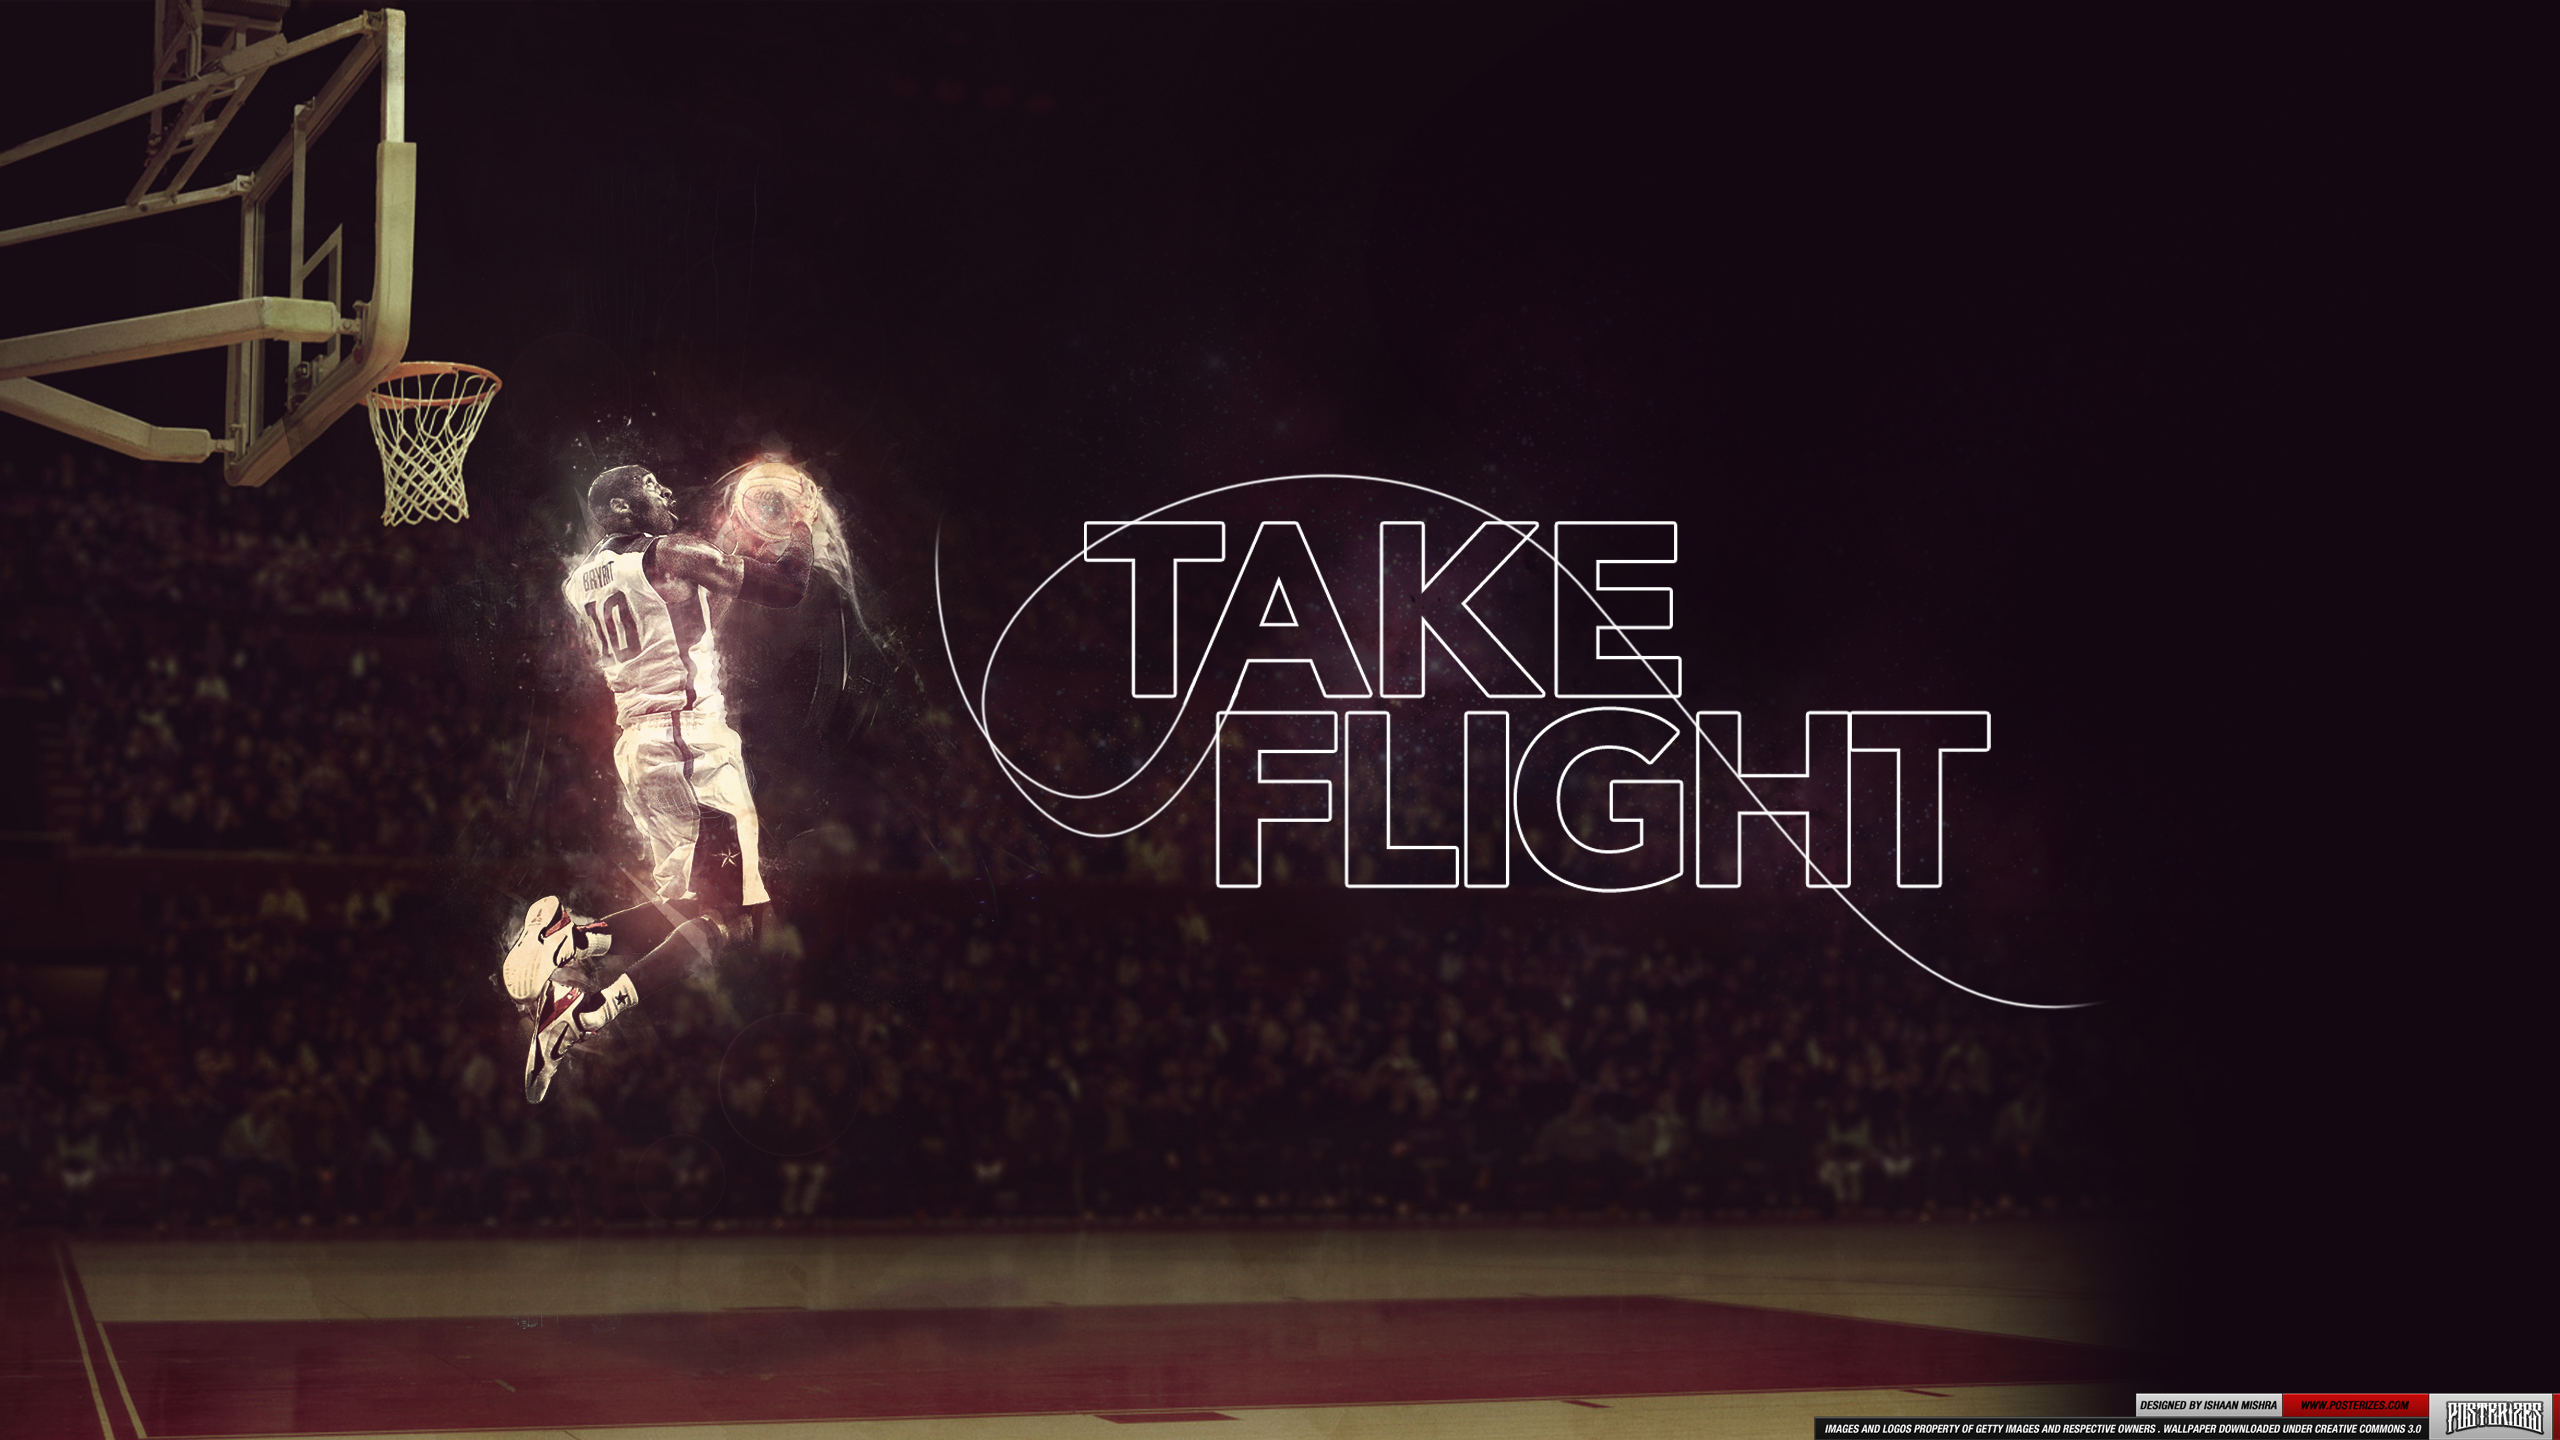 Jordan Flight Logo Wallpaper Kobe bryant take flight 2560x1440